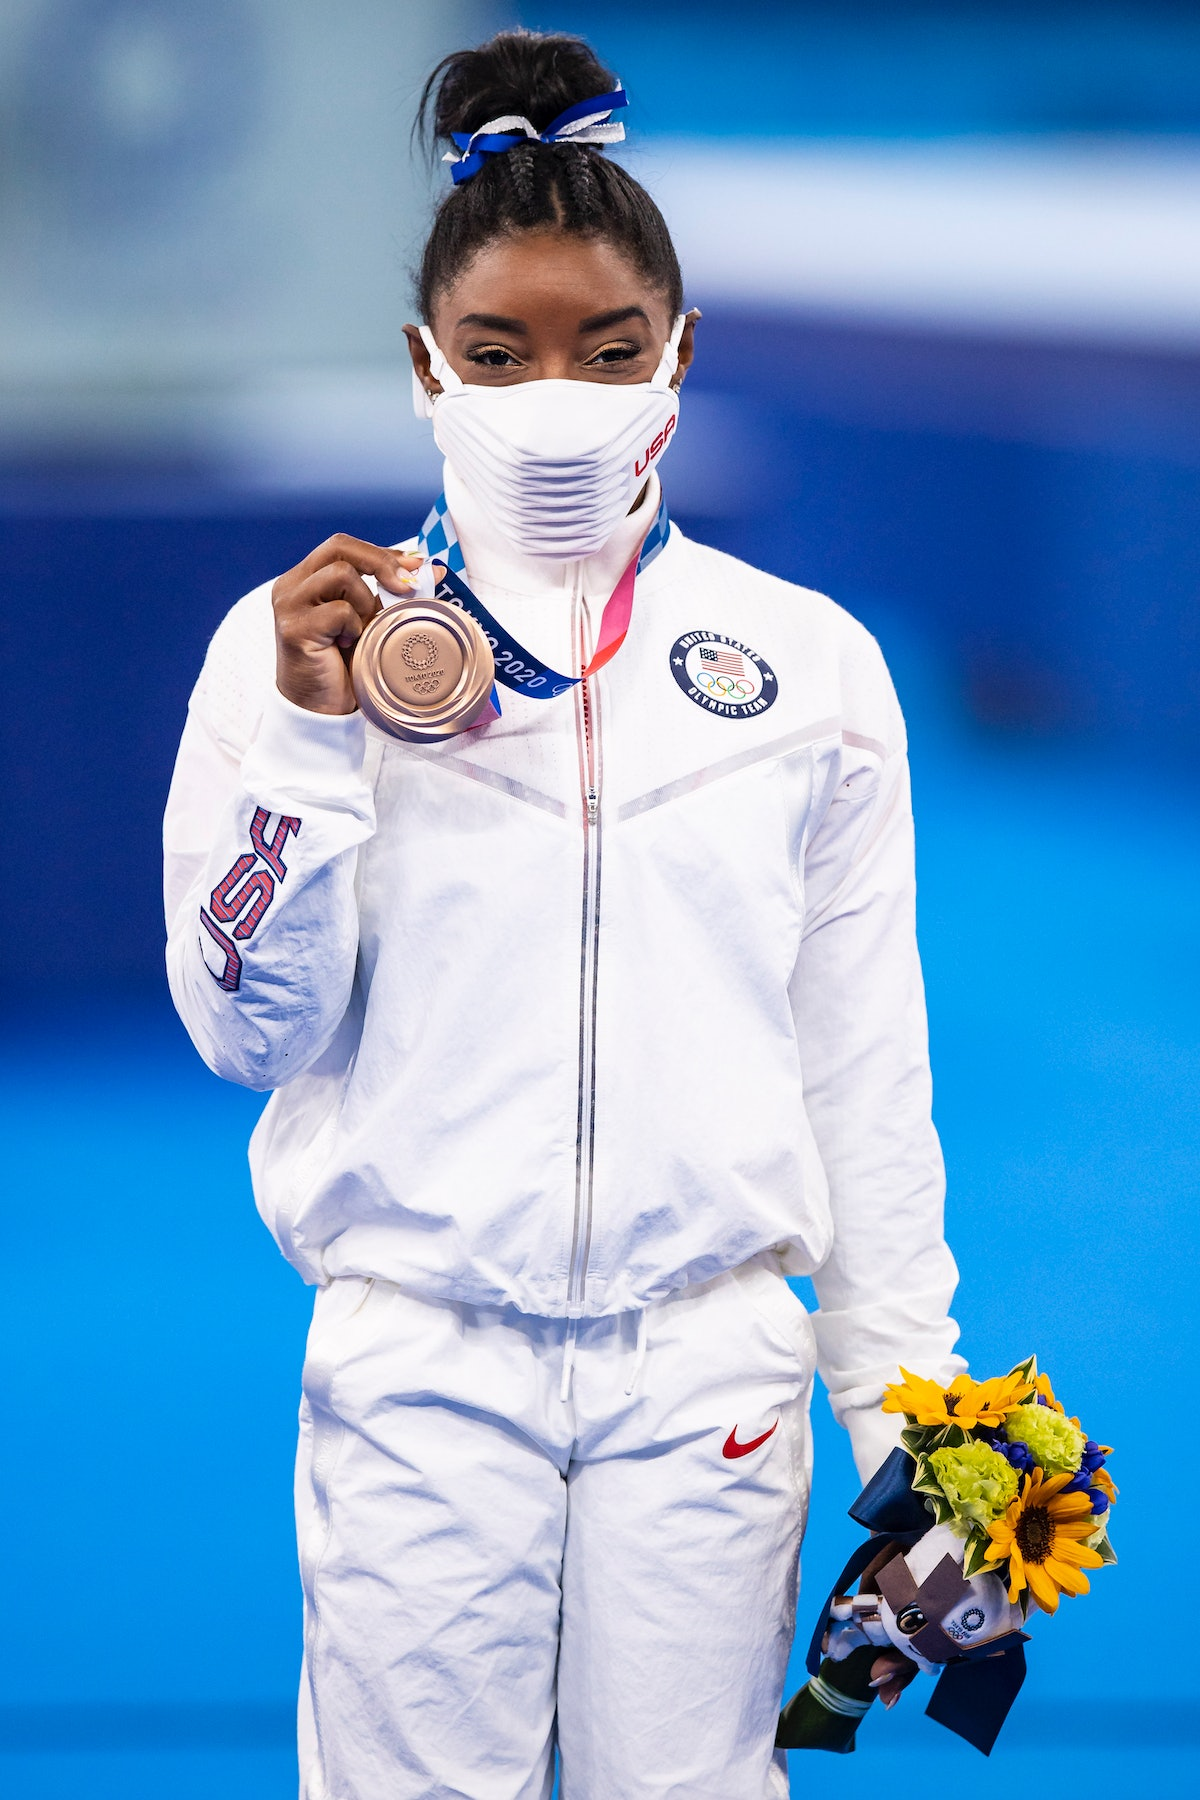 Simone Biles, wearing an all-white Team USA tracksuit, shows off her bronze medal at the 2021 Olympi...